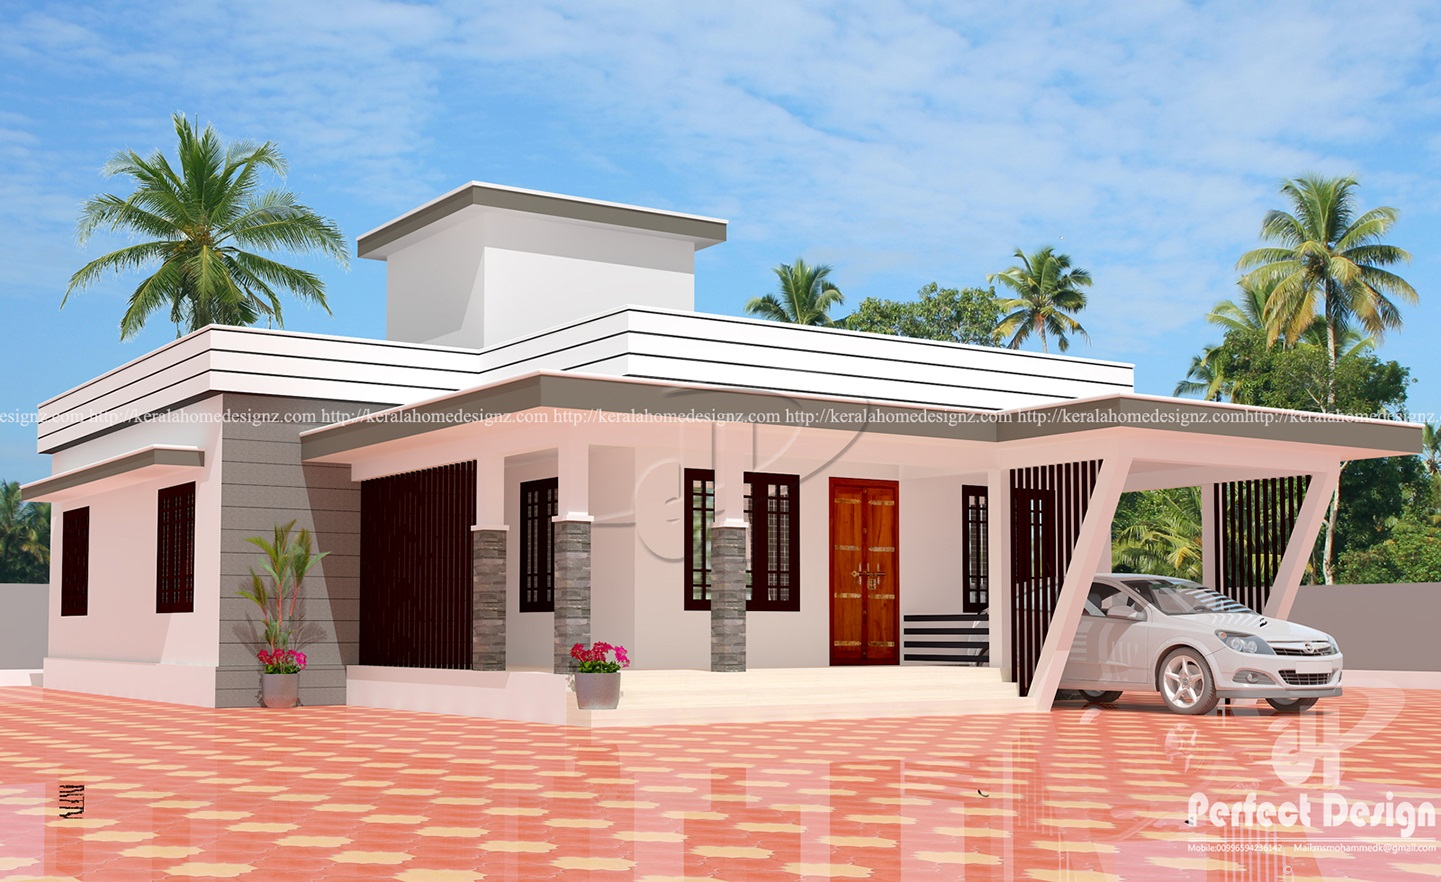 This Modern Flat Roof House Plan Designed To Be Built In 1162 Square  Feet(108 Square Meters) . Proposed For Mr. Rajesh,Kollam. It Includes 3  Bedrooms With ...